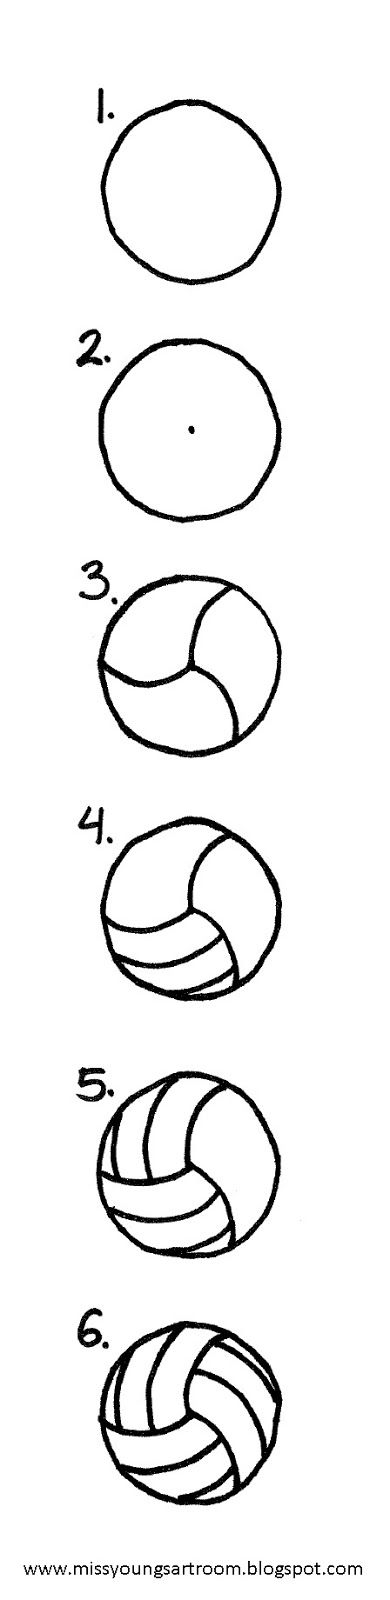 Miss Young S Art Room How To Draw A Volleyball Instead Of A